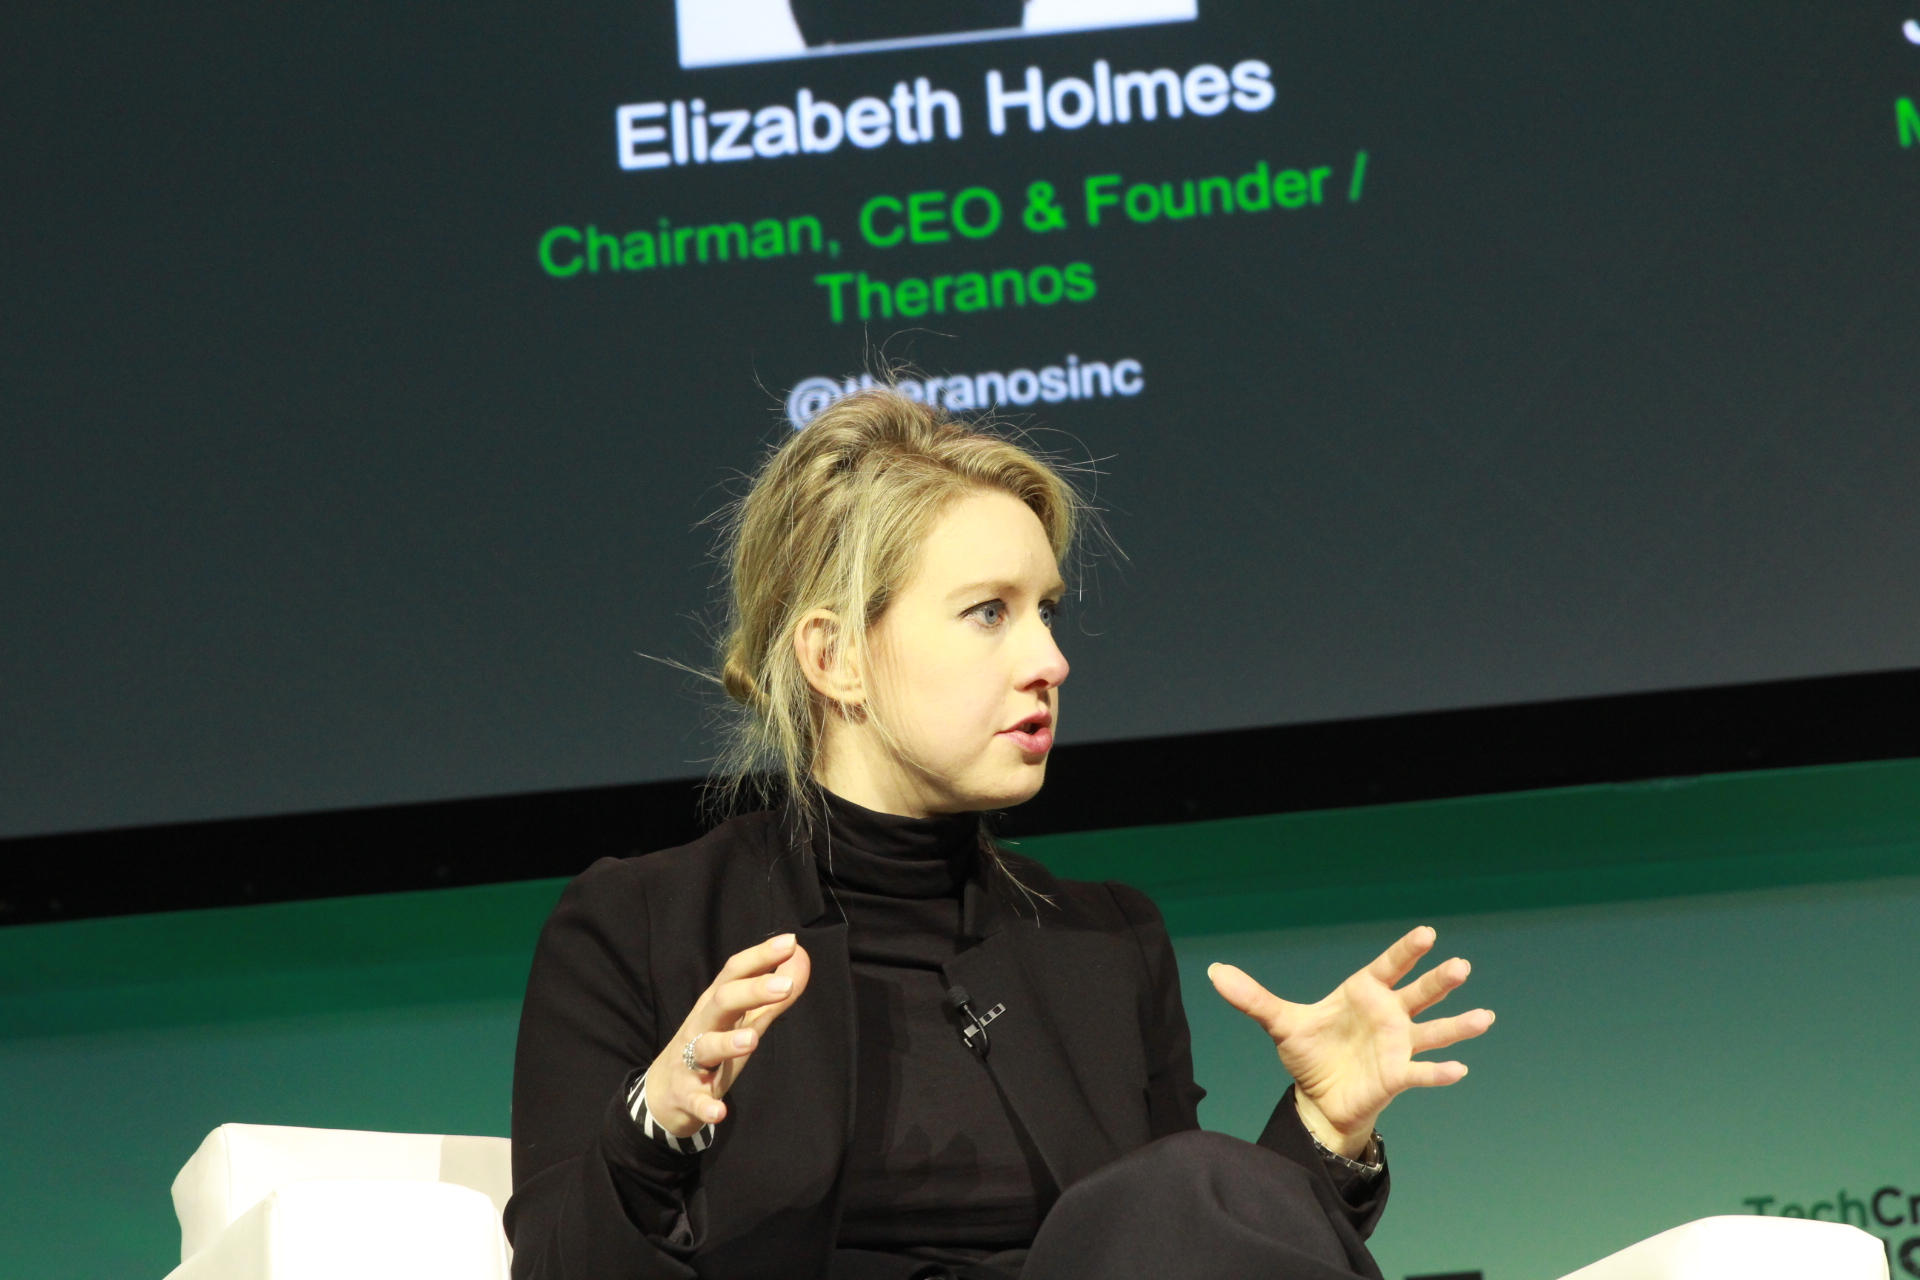 Theranos gets $100 million in debt financing to carry it through 2018, with some caveats